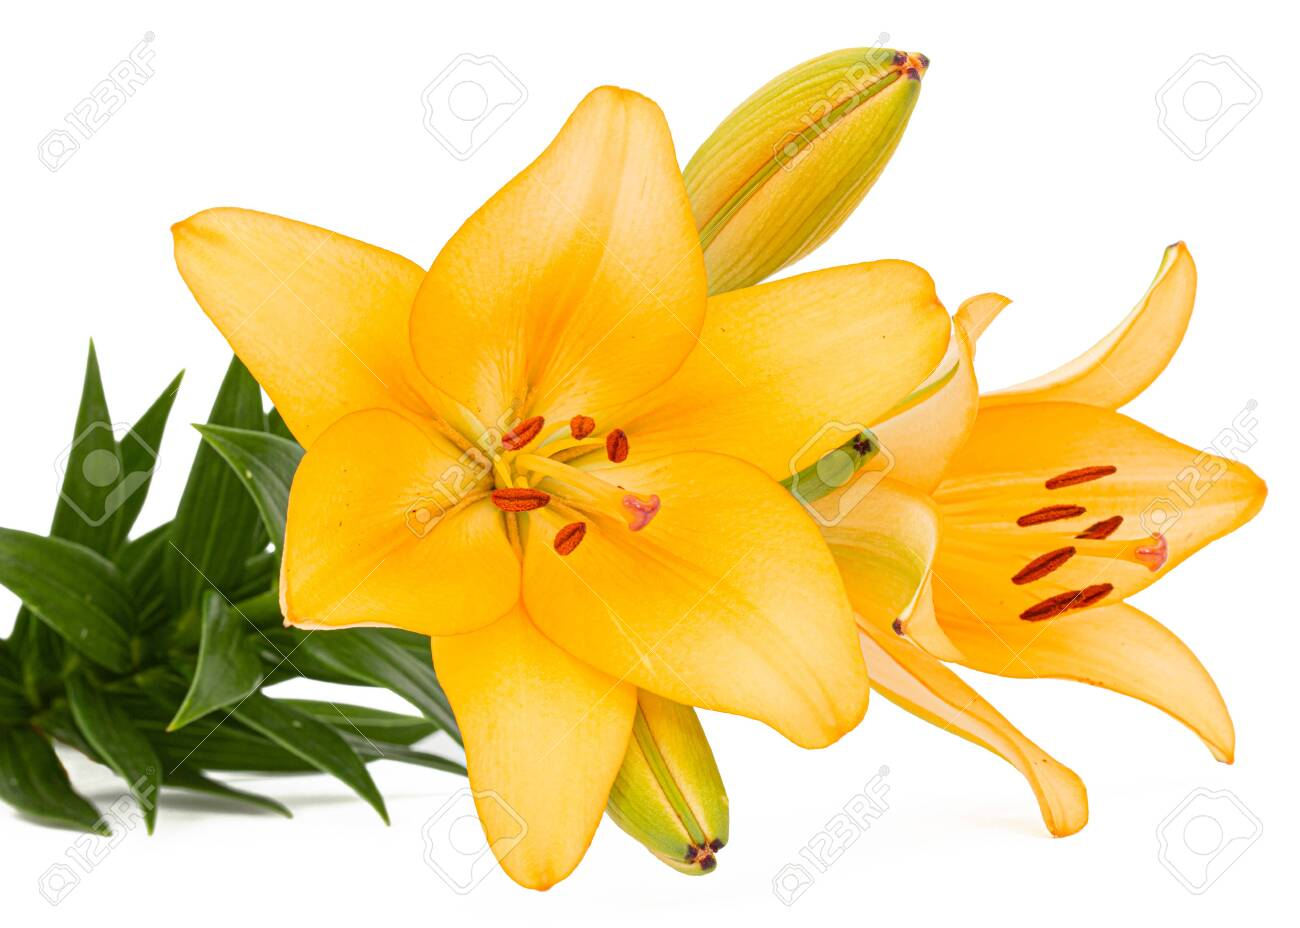 Flower of yellow lily, isolated on white background - 125115429